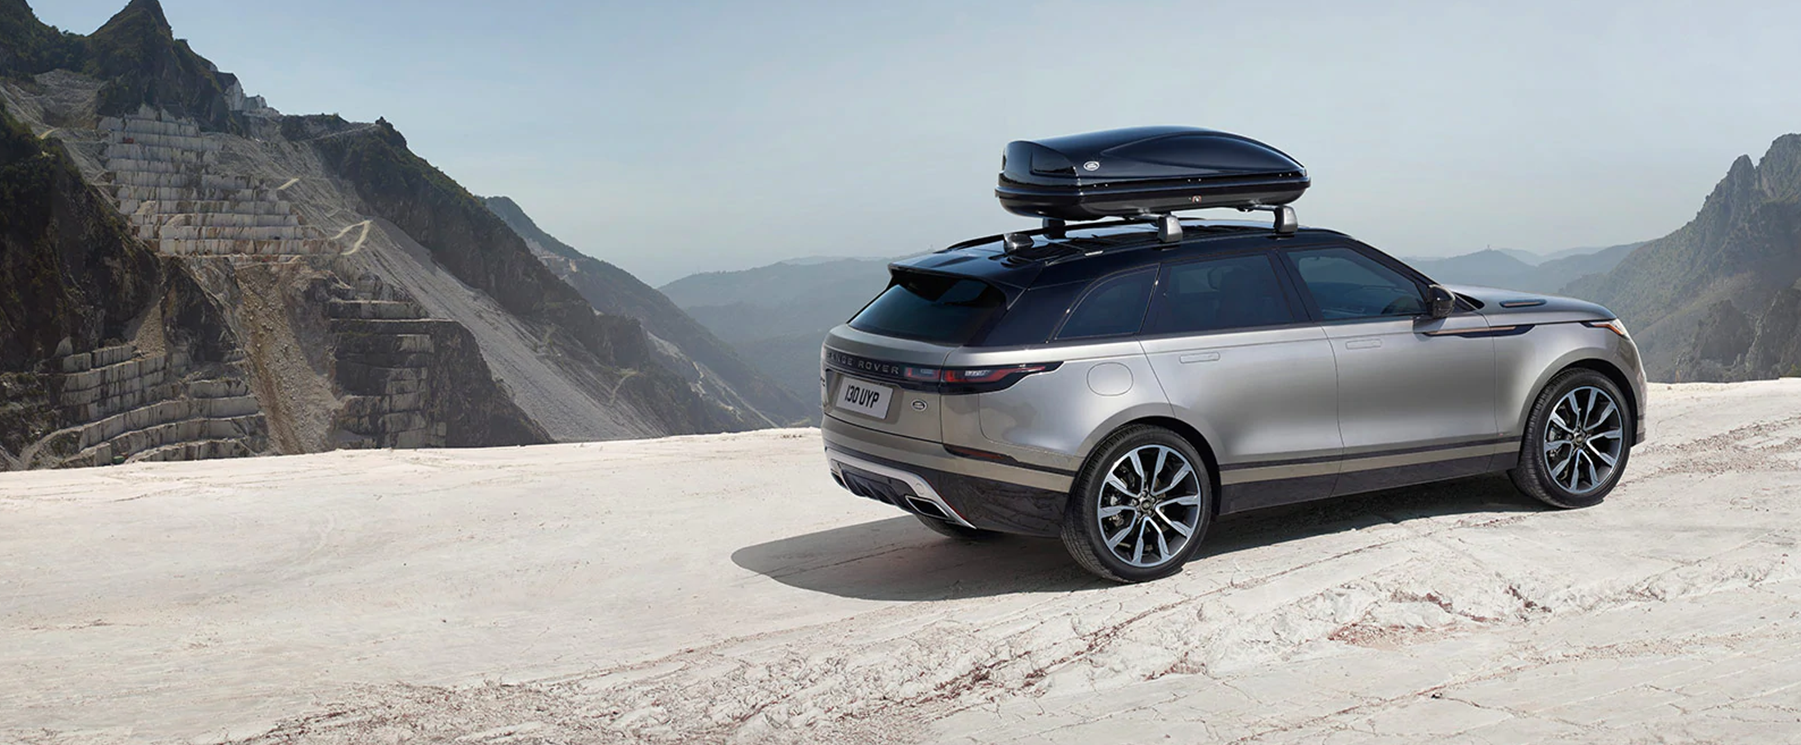 2020 Land Rover Range Rover Velar Model Overview at Land Rover Louisville